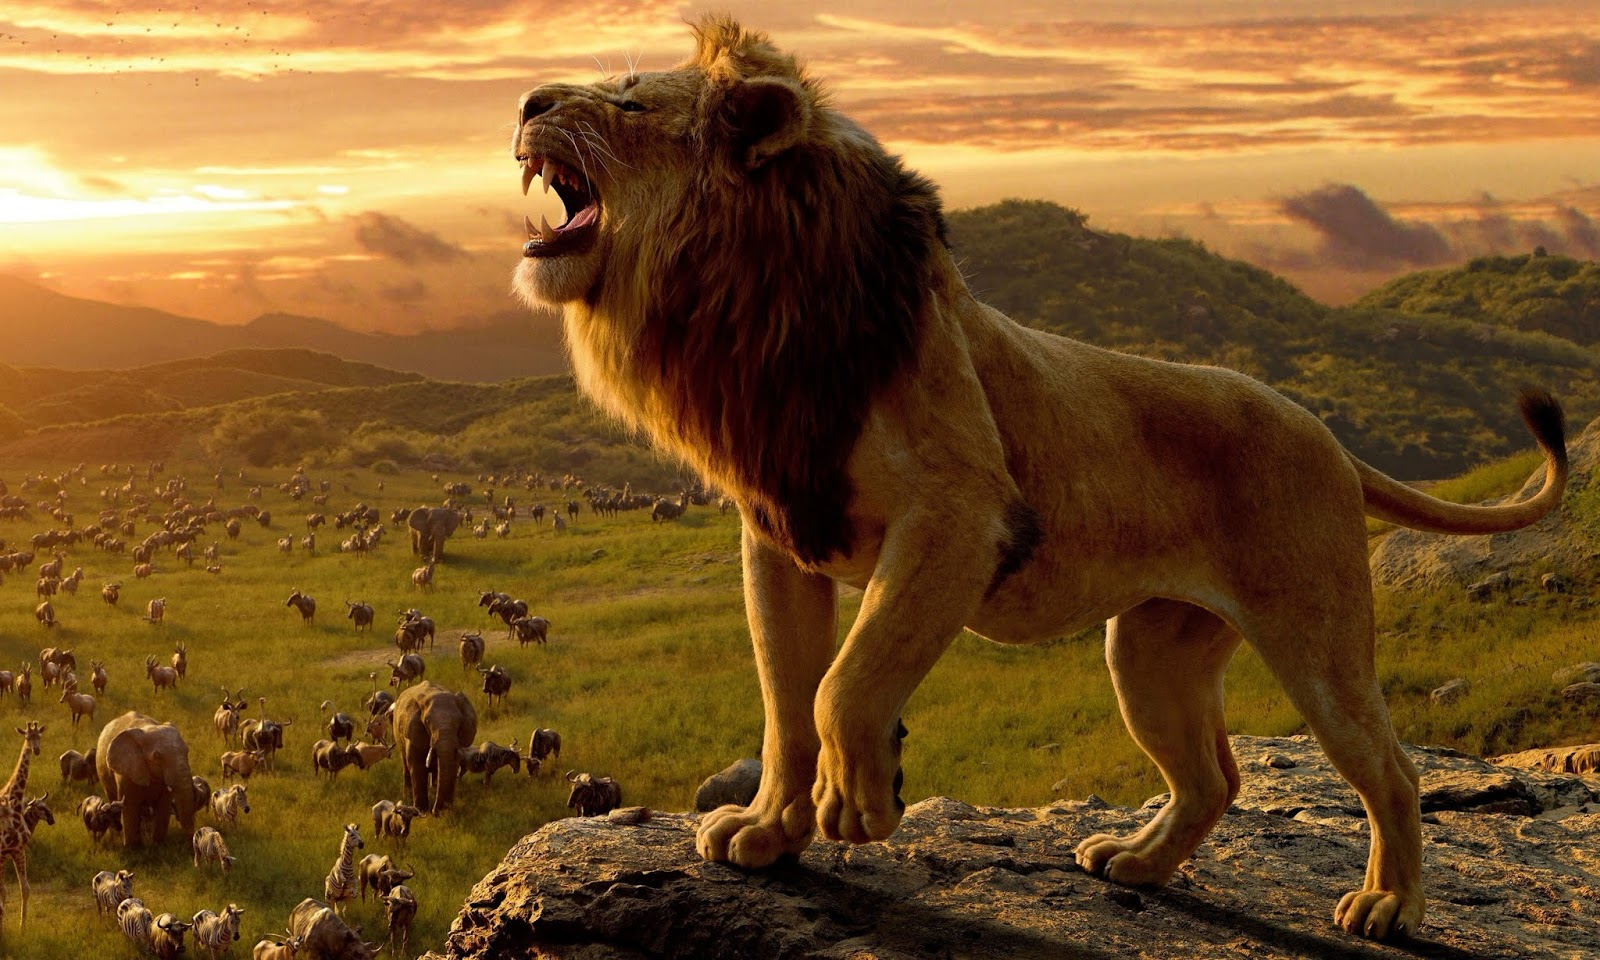 Lion King Songs and Wallpapers 2019